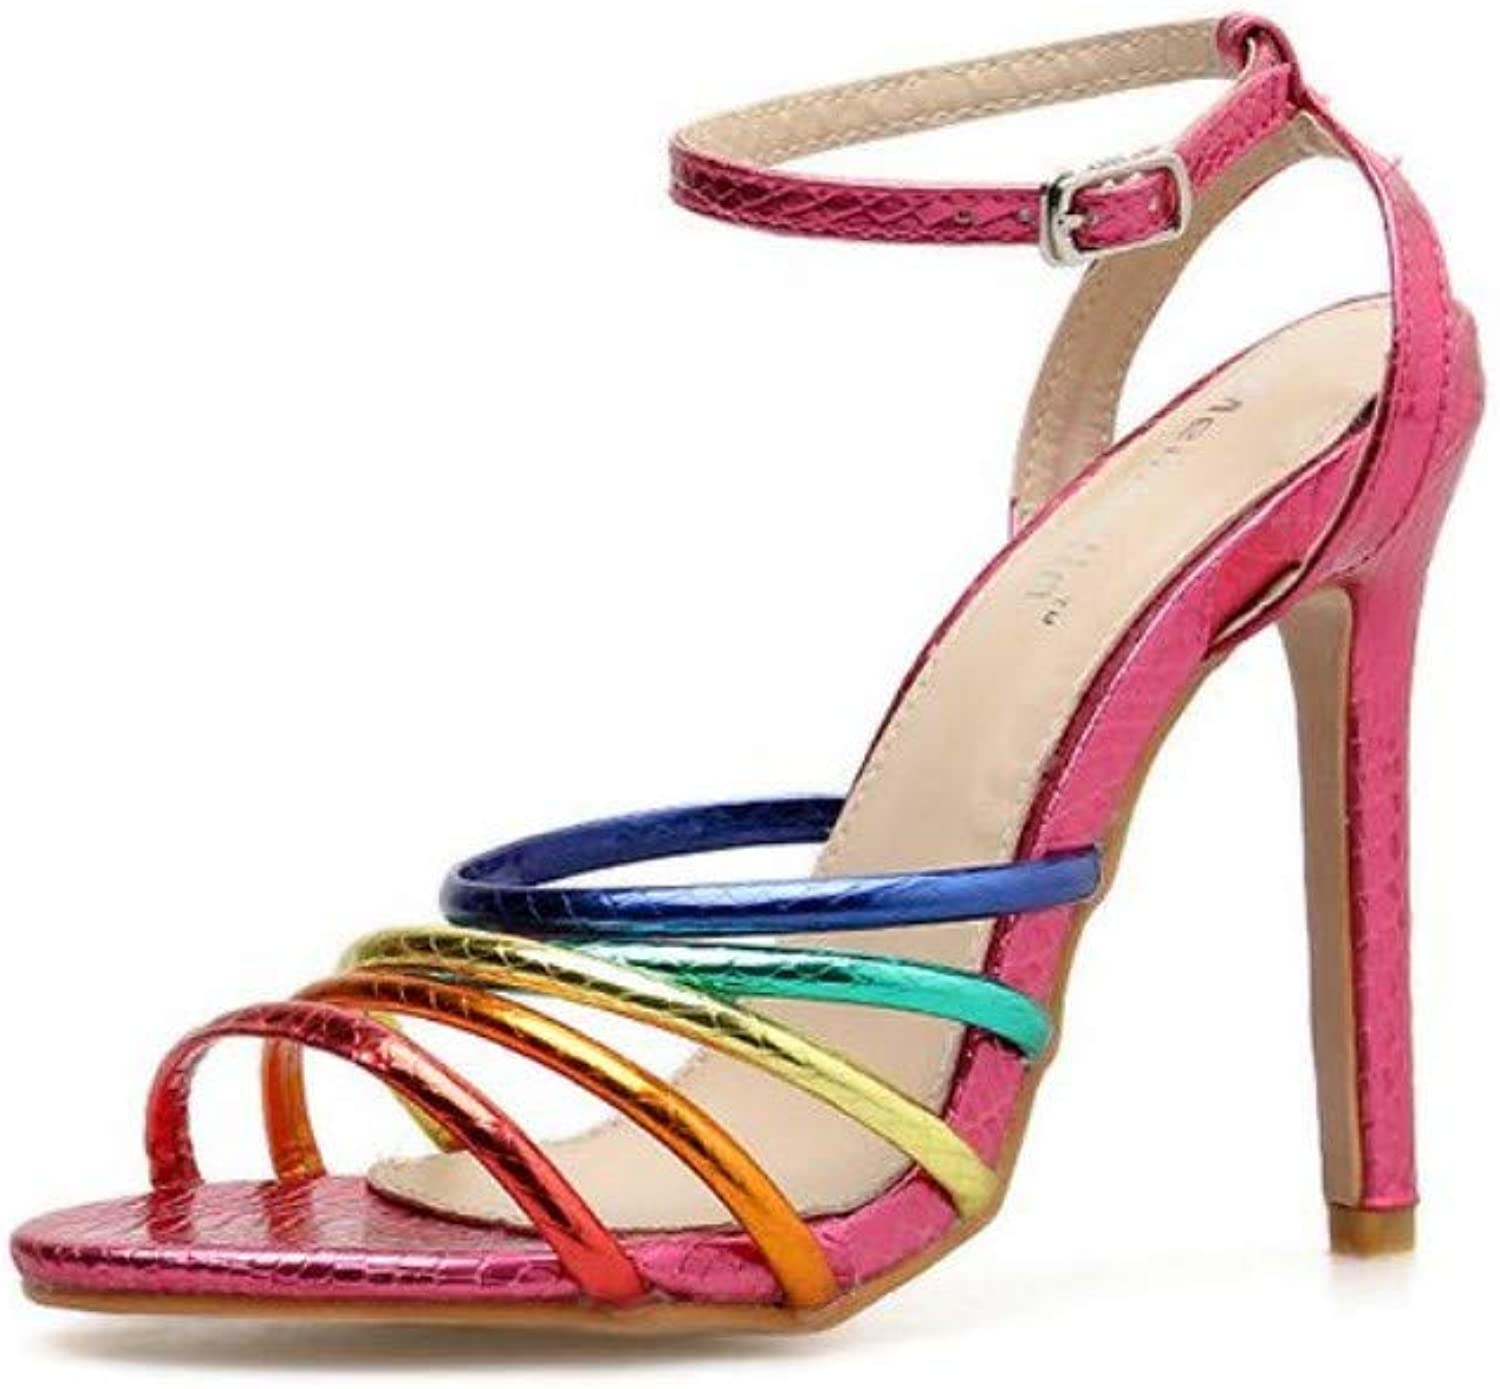 JQfashion Ladies'High-Heeled shoes Ribbons Sexy High-Heeled Sandals Pointed Thin-Heeled color Roman shoes